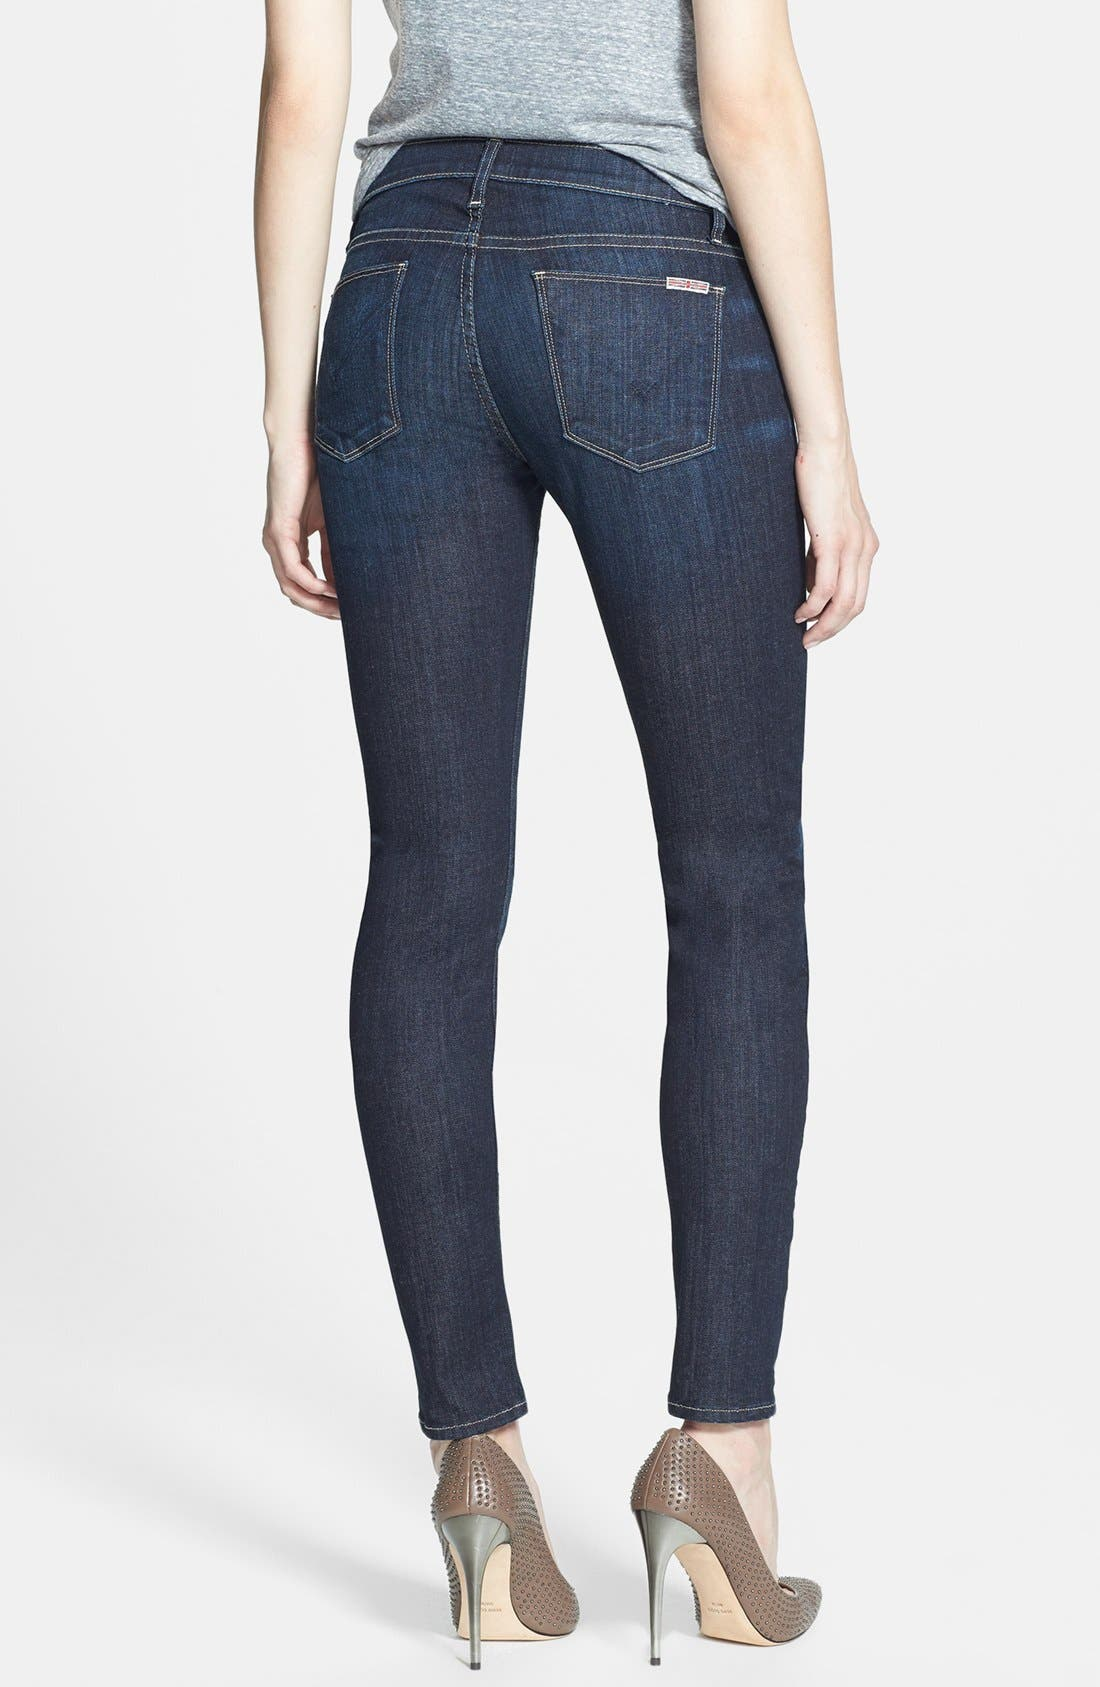 'Collette' Mid Rise Skinny Jeans,                             Alternate thumbnail 2, color,                             401